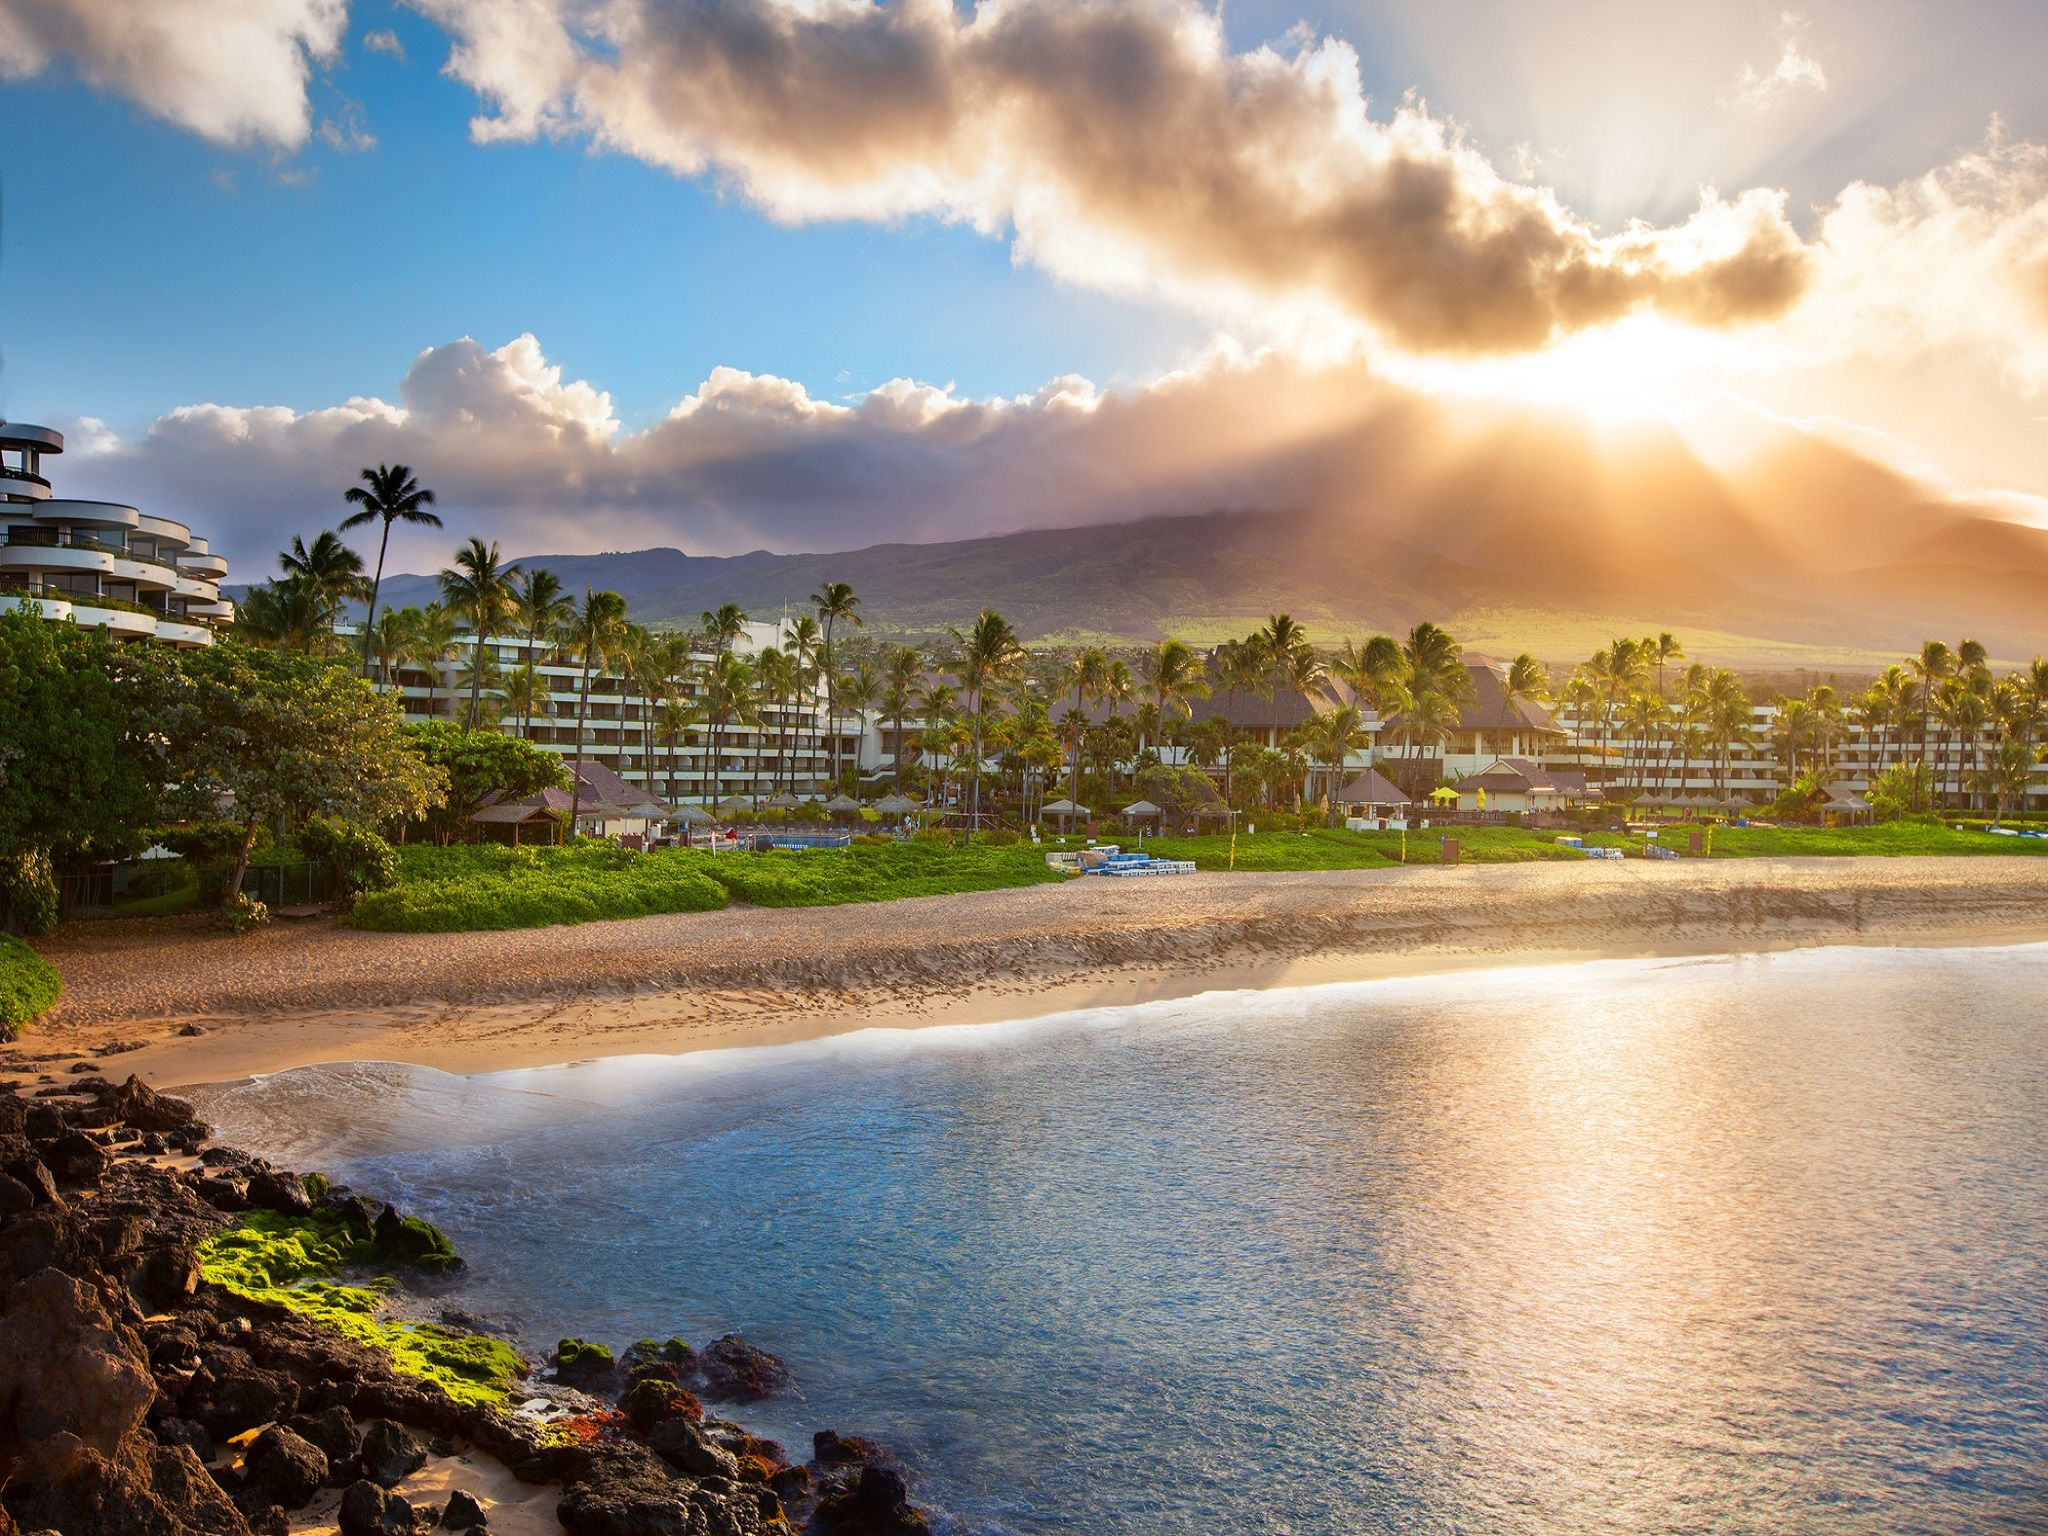 Maui Hotel Sheraton Maui Resort Spa - Sheraton hawaii